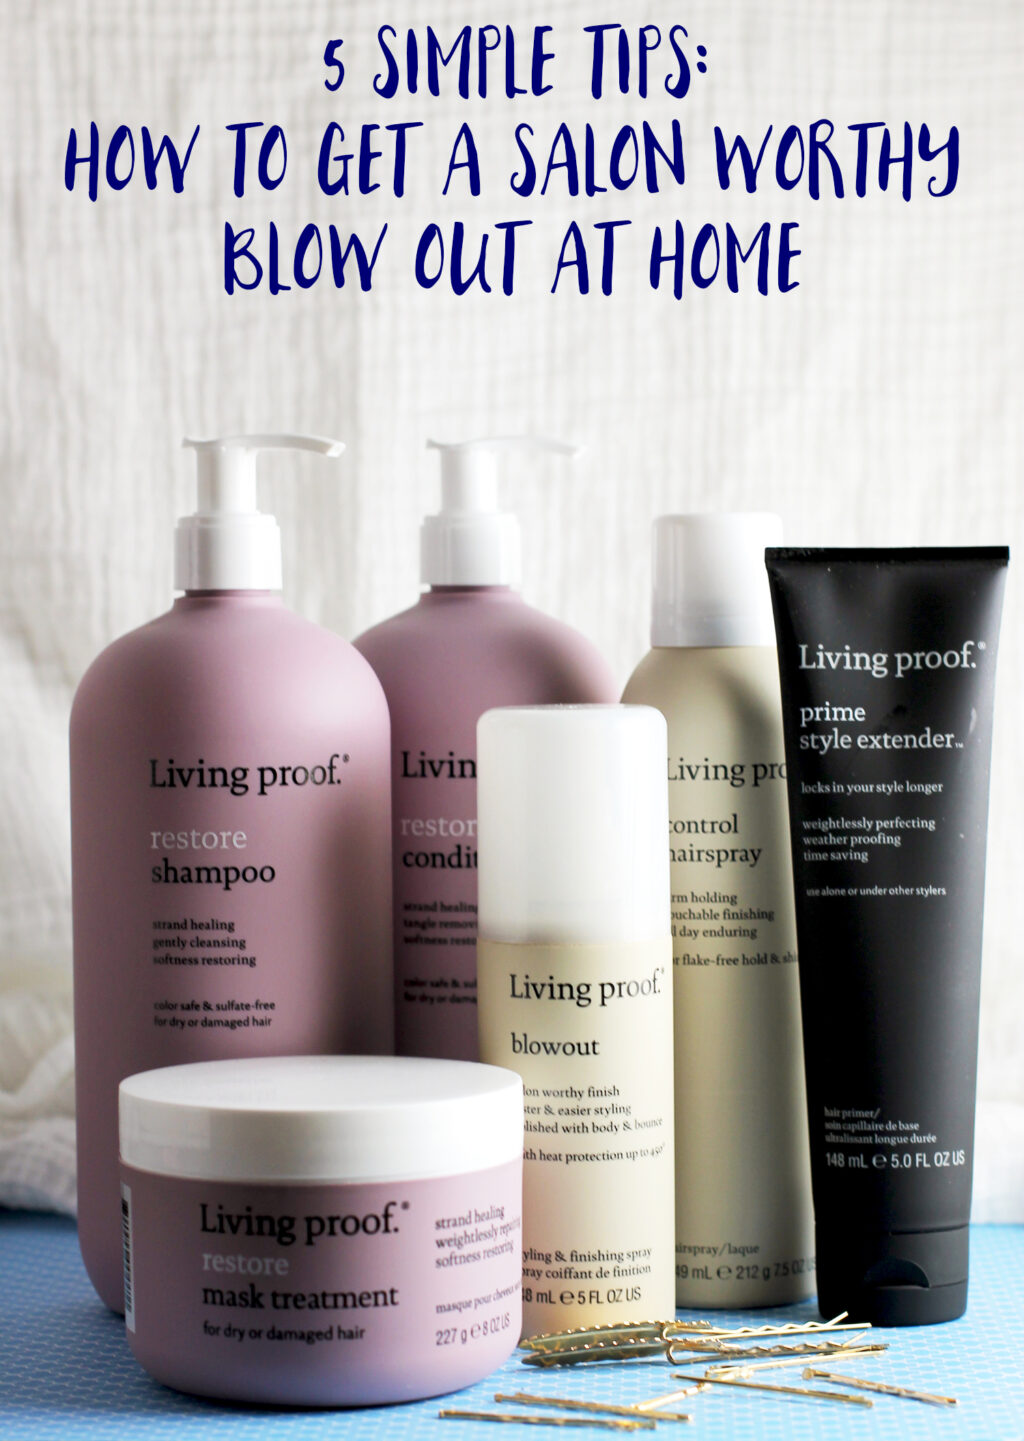 Life Hack Alert: Want to know how to get a great at home blowout? These simple tips are just what you need!